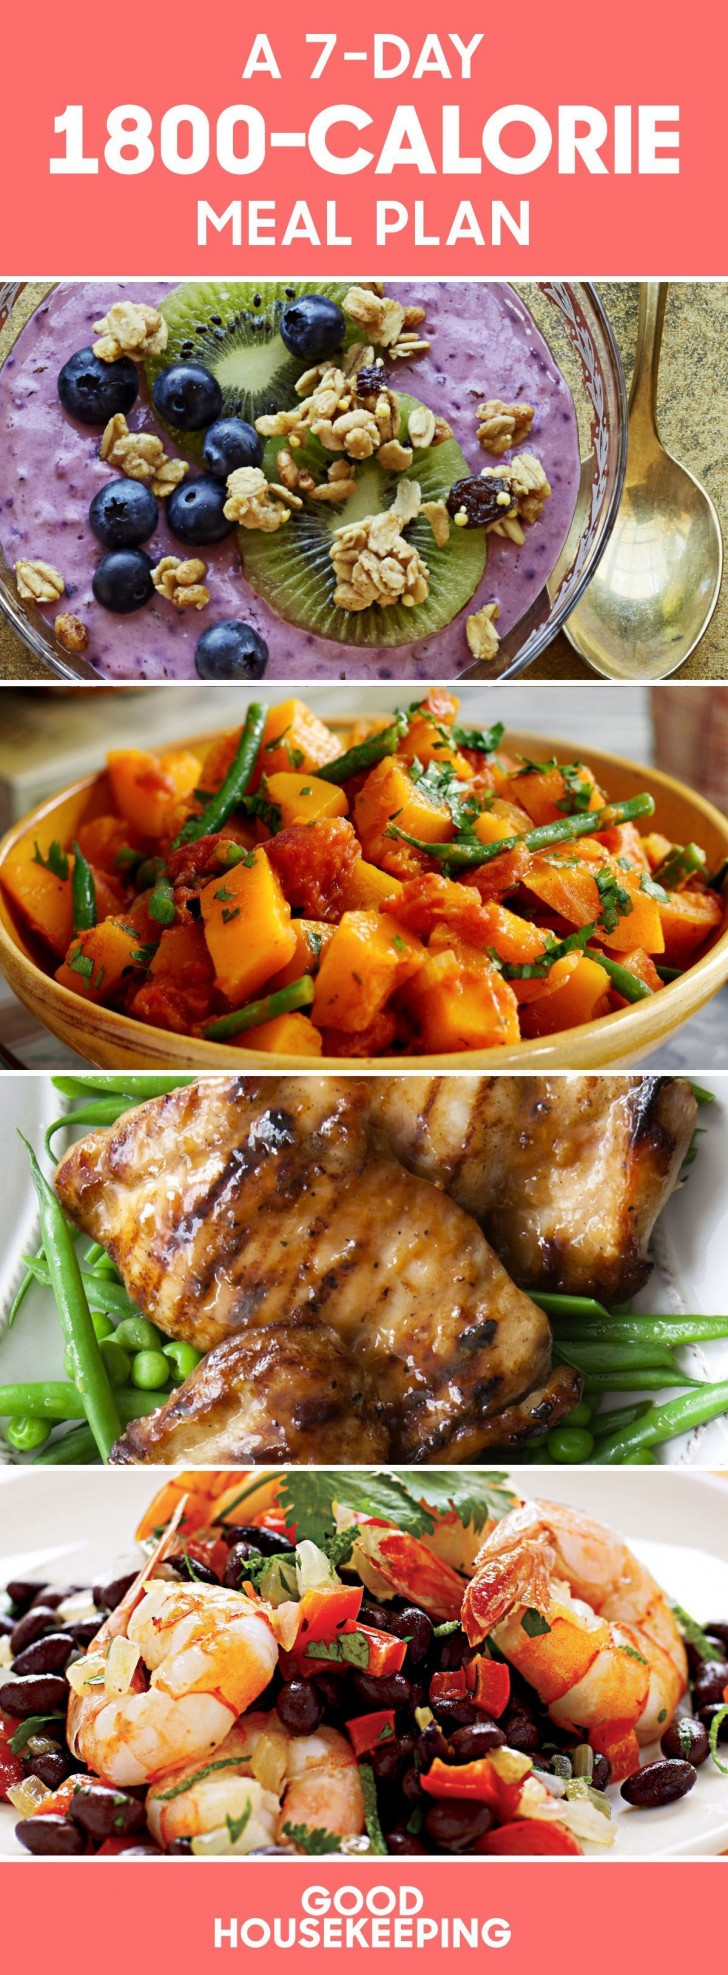 003 Simple Sample 1800 Calorie Meal Plan Pdf Highest Quality 728